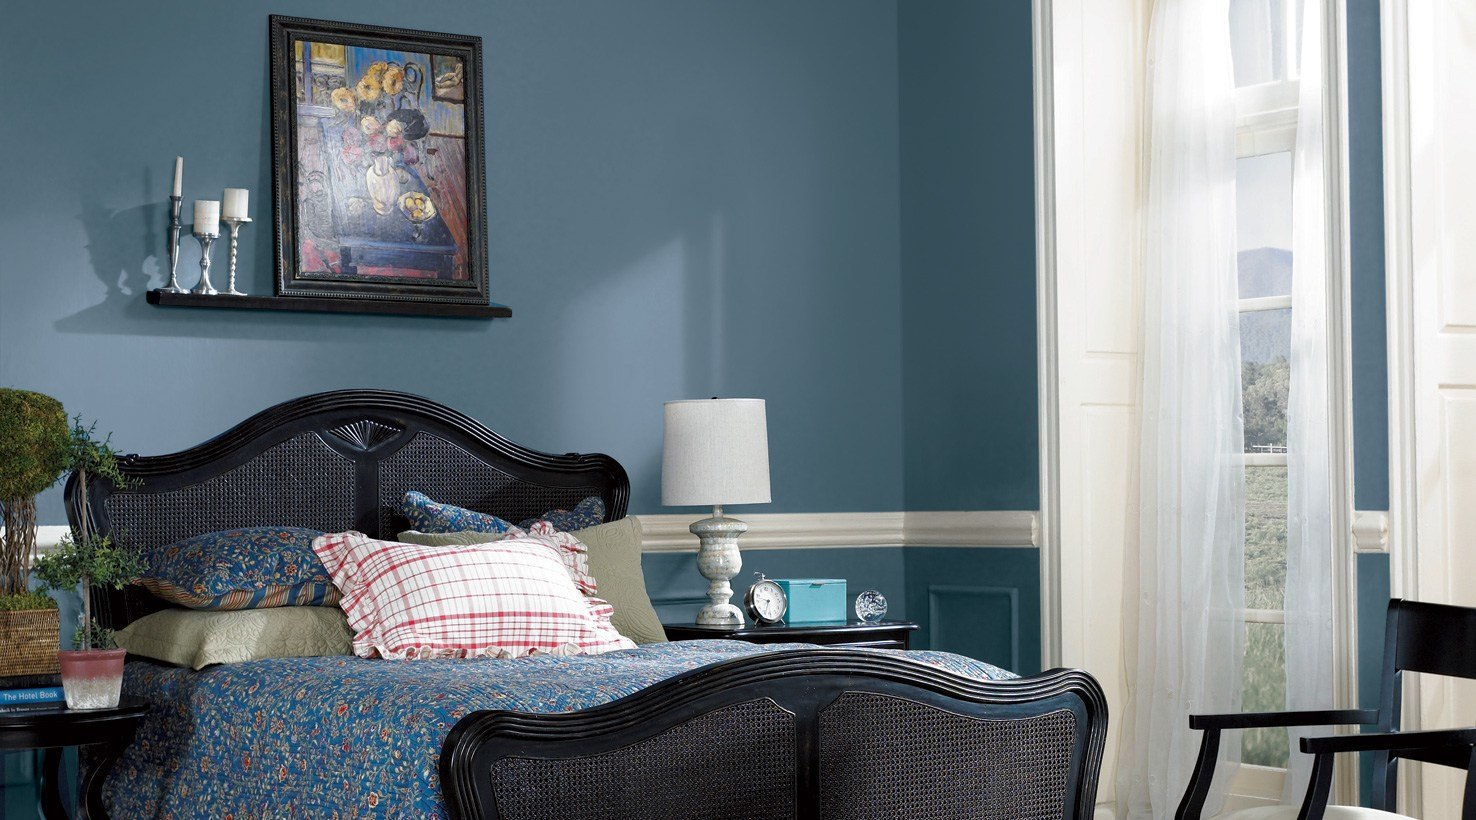 Best Bedroom Color Inspiration Gallery – Sherwin Williams With Pictures